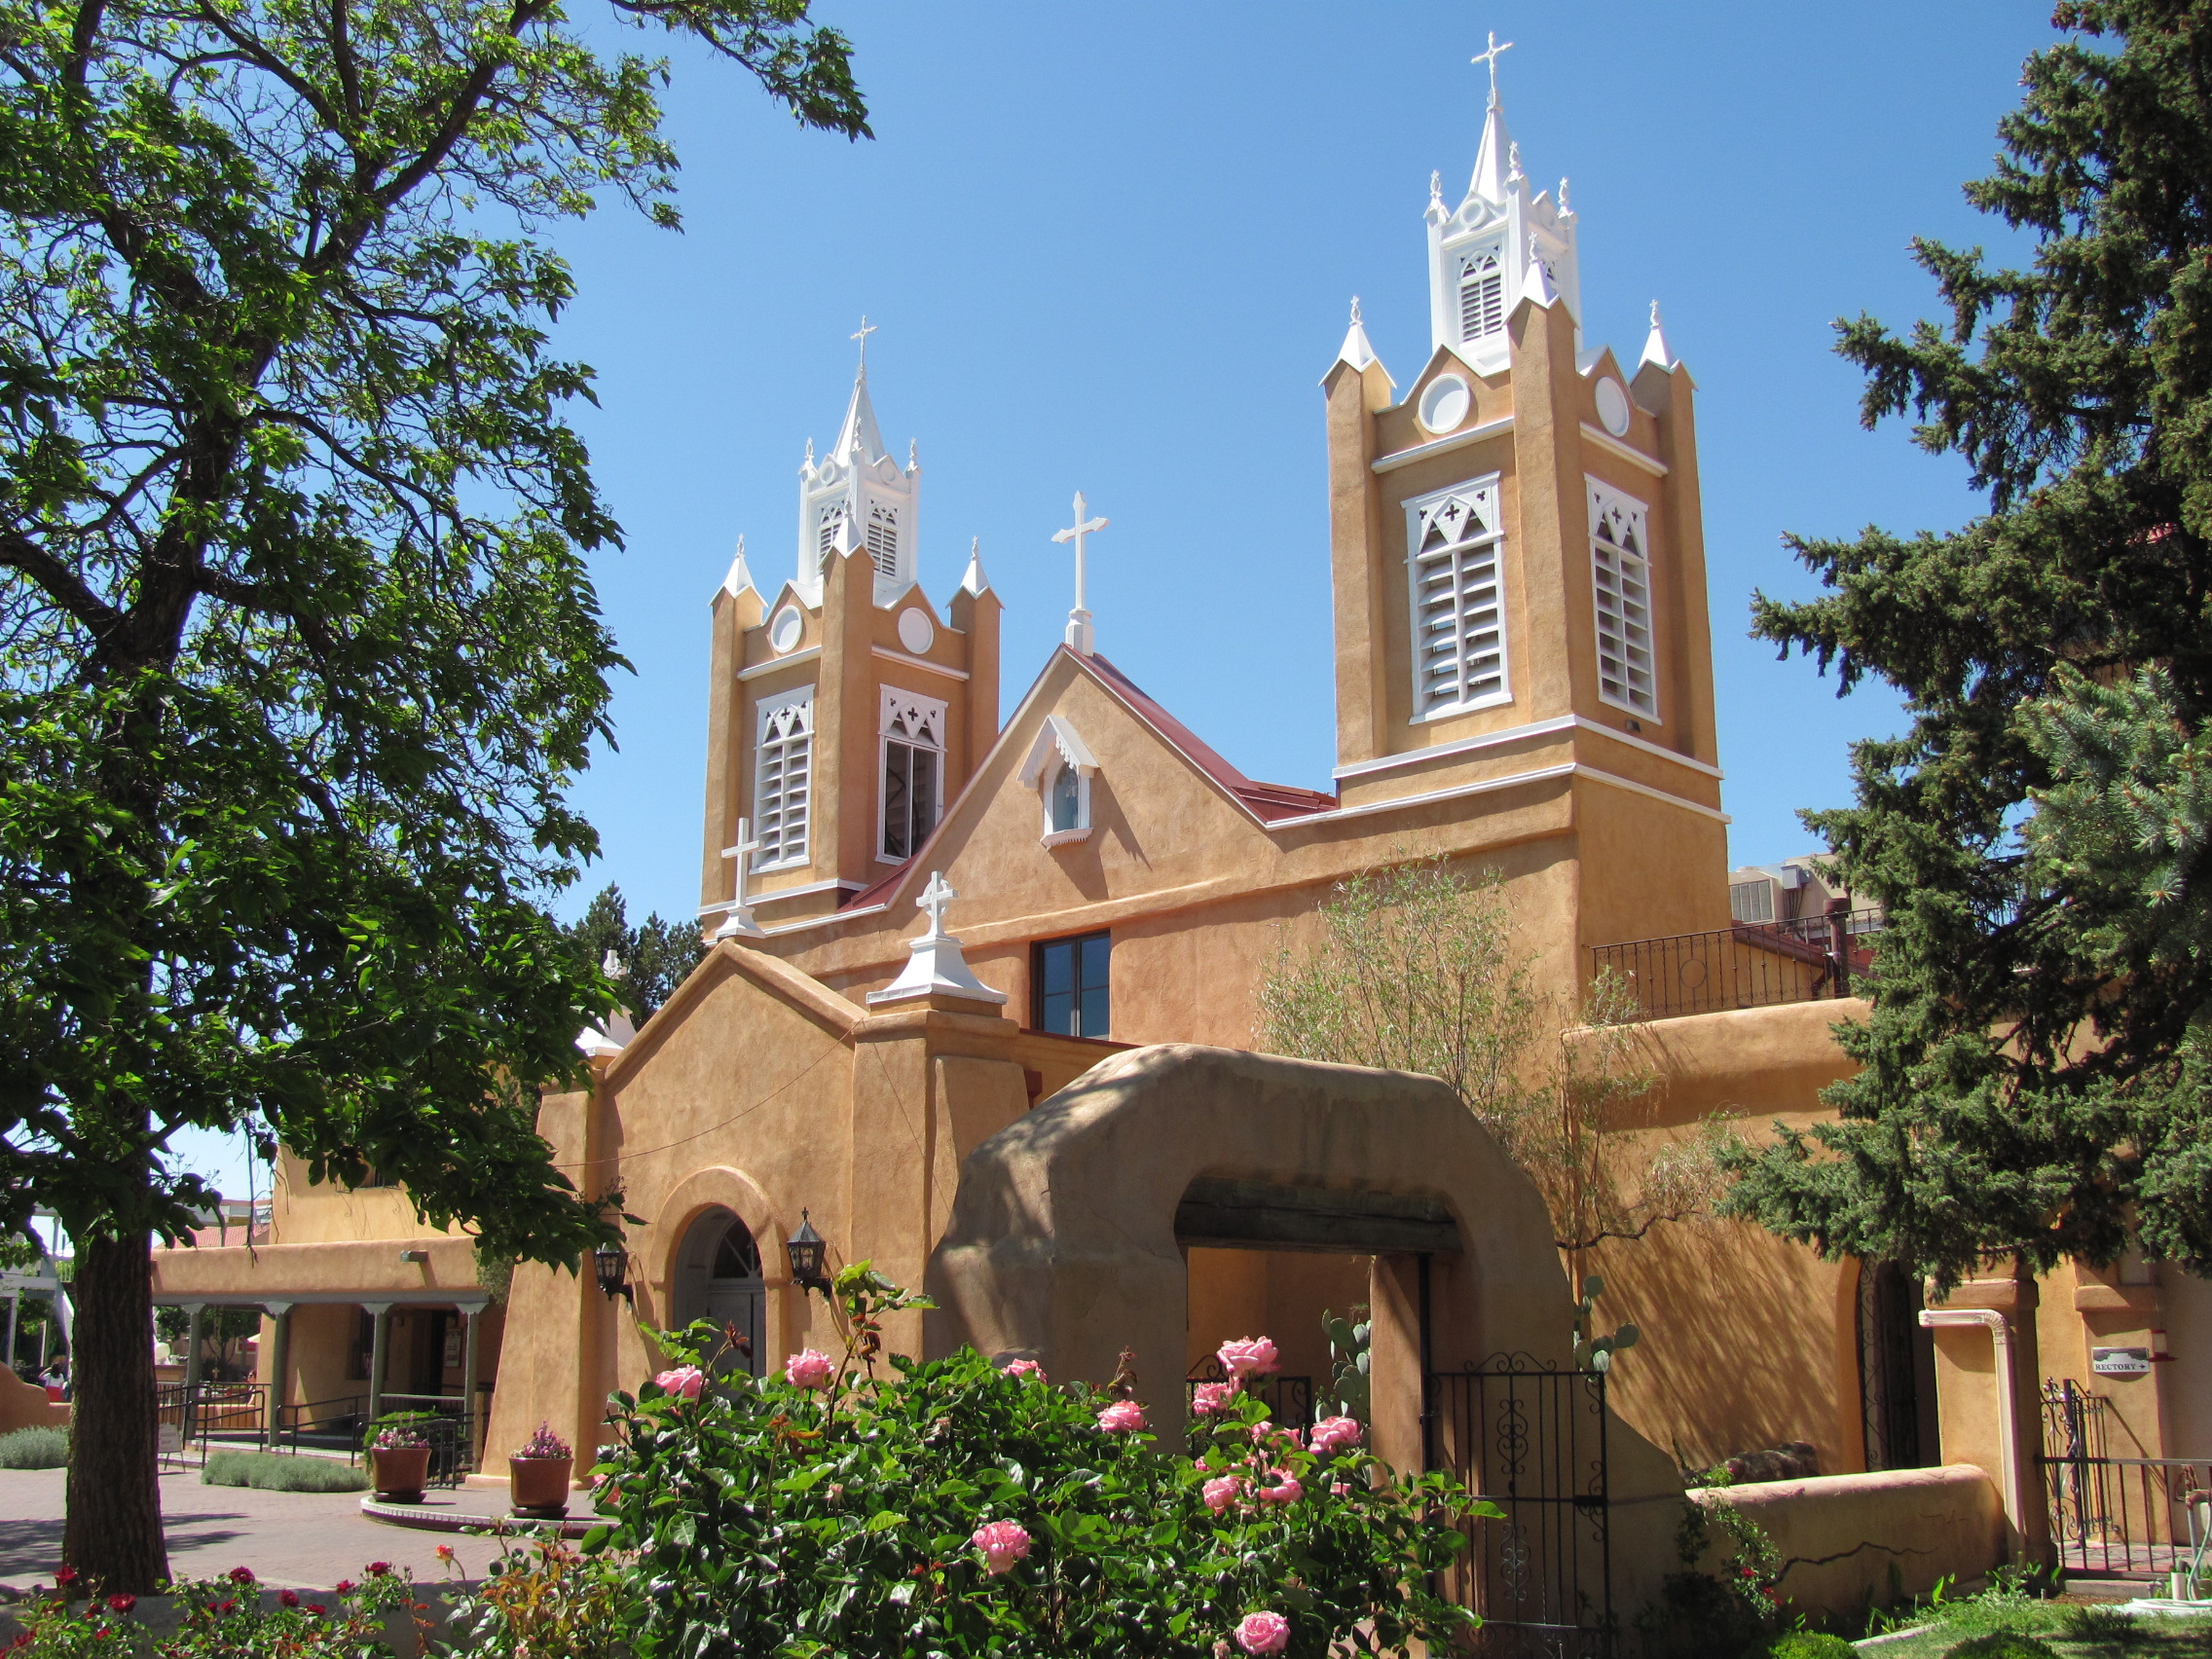 San_Felipe_de_Neri_Church,_Albuquerque_NM